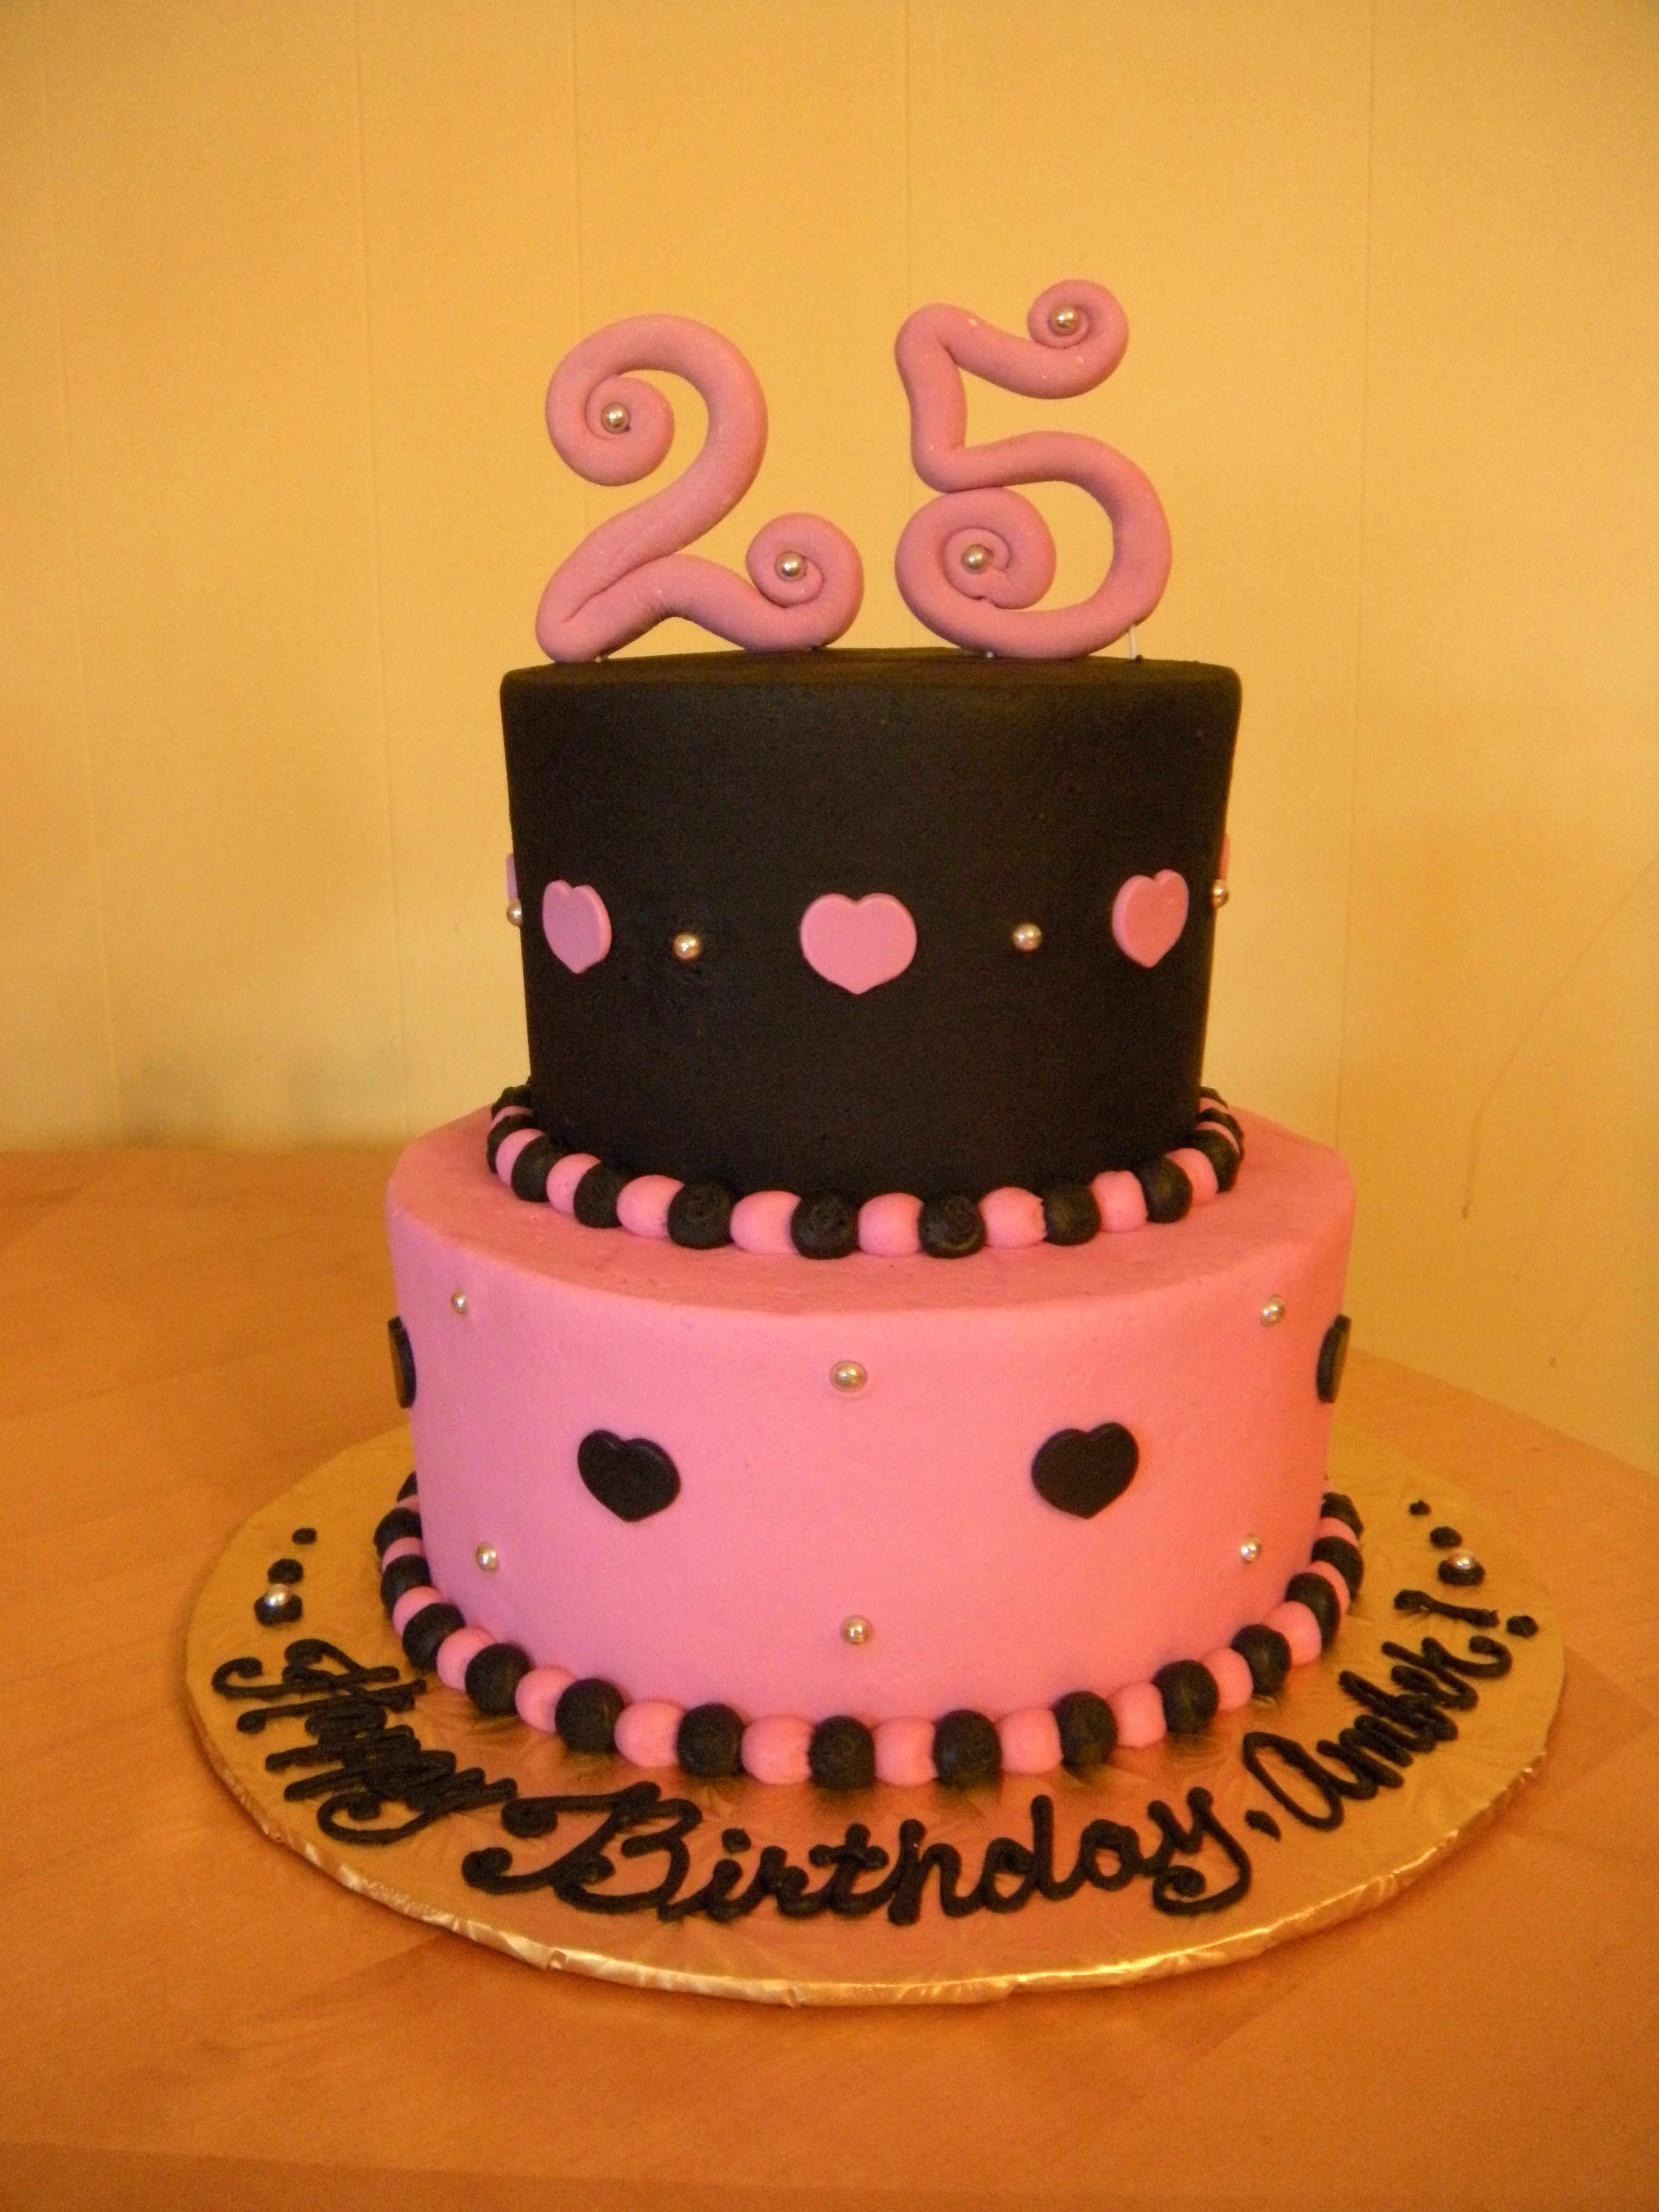 Best ideas about 25 Birthday Cake . Save or Pin 25th birthday cake Now.